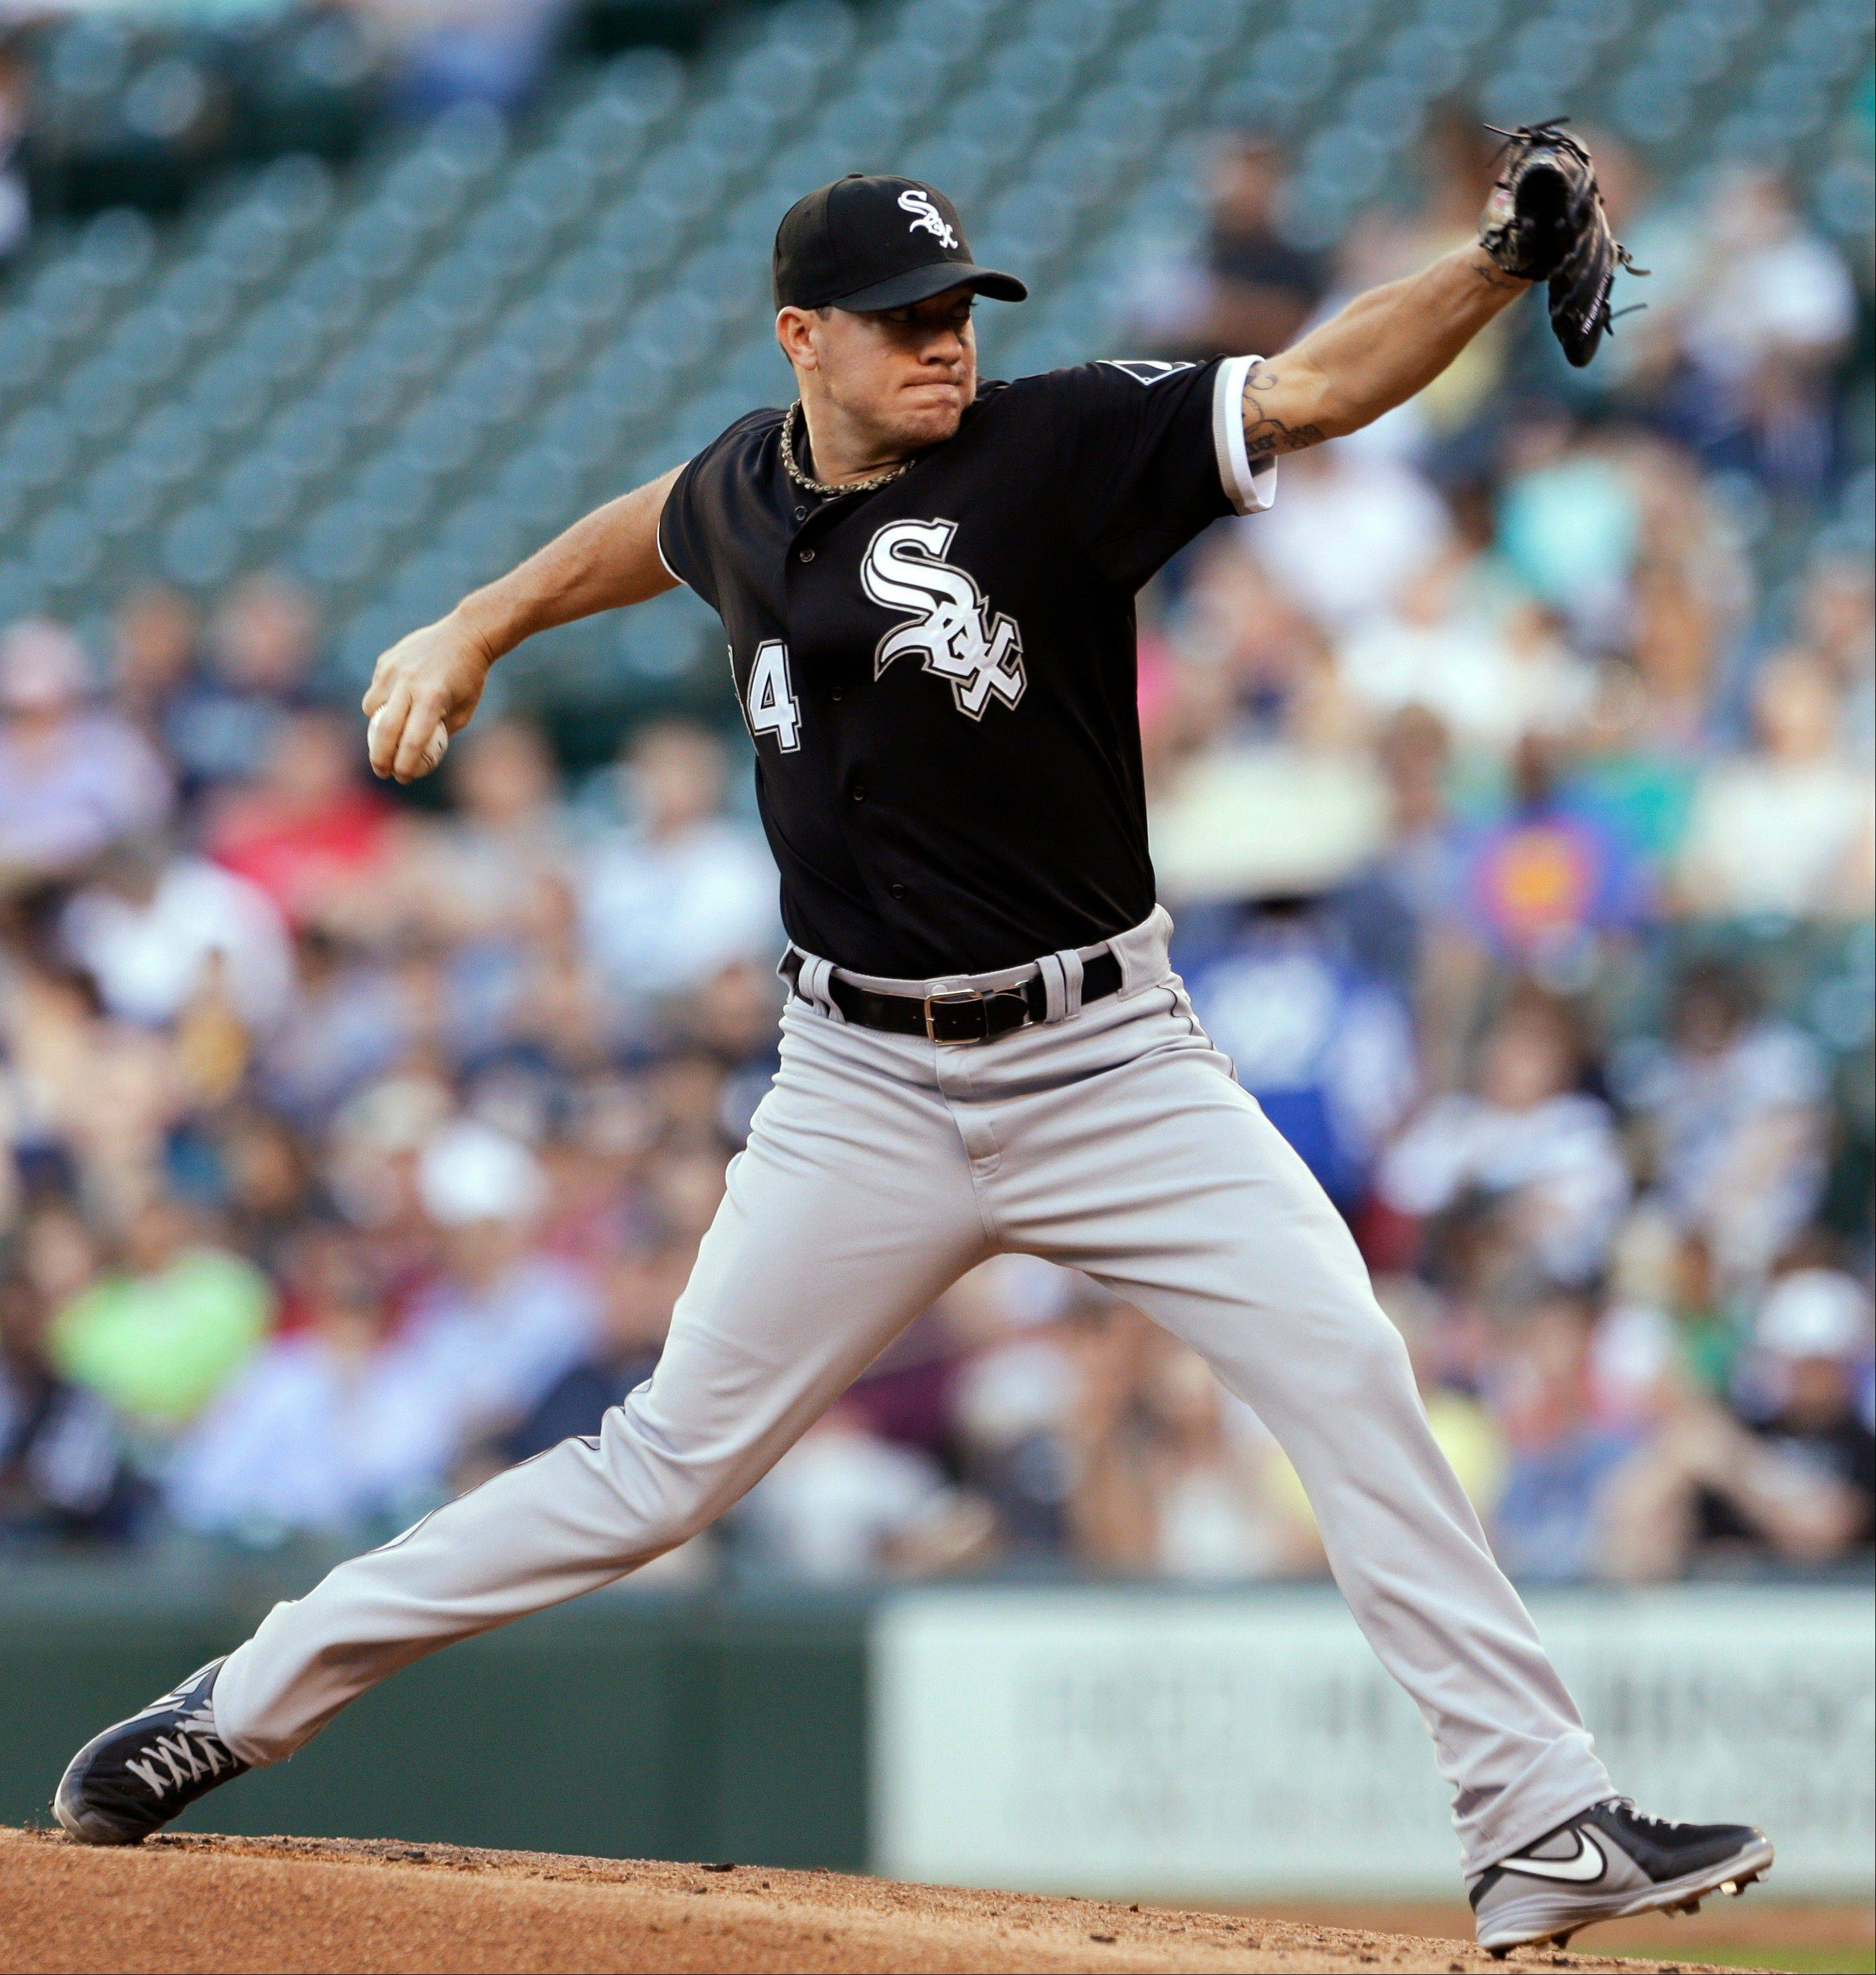 White Sox starter Jake Peavy left the game Tuesday at Seattle in the third inning because of discomfort in his left side. X-rays reportedly were negative, but he will have an MRI today.